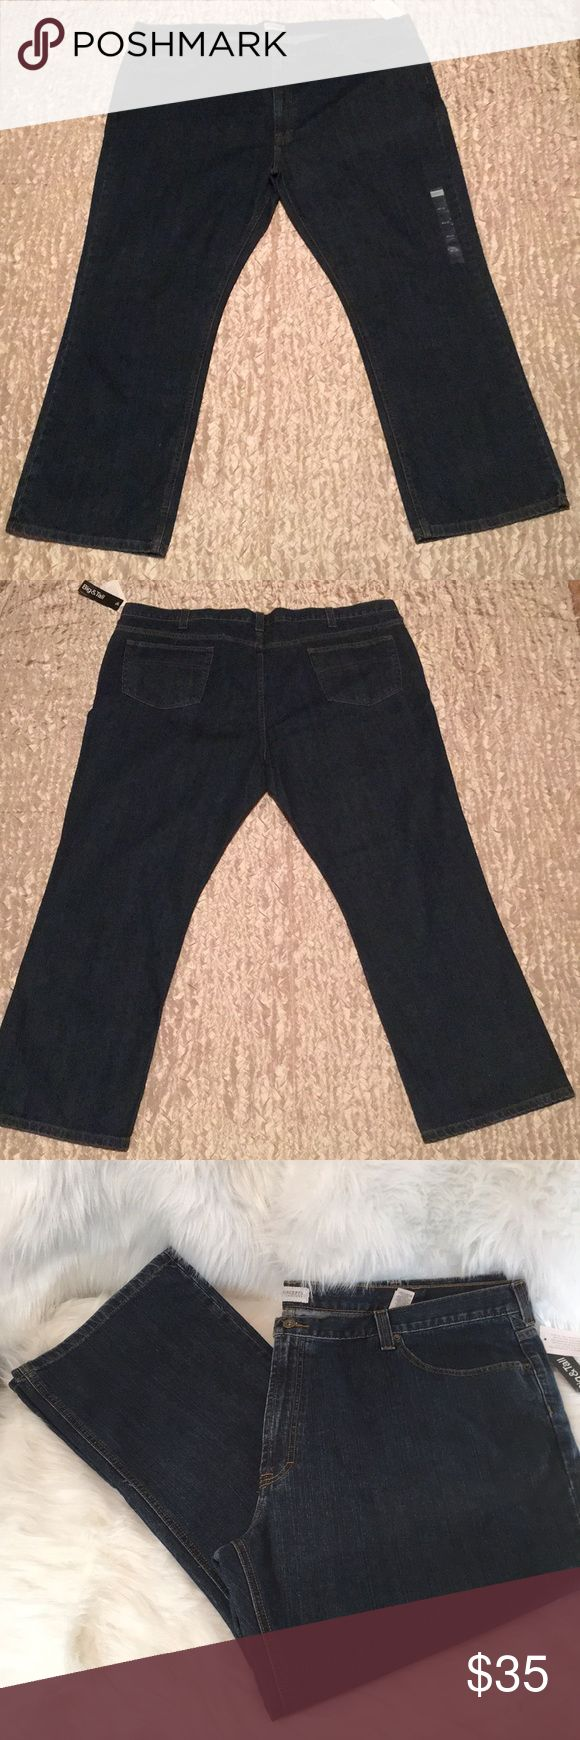 """Concepts Liz Claiborne Men's Jeans 48/30 Big&Tall Well made. Double stitched. Rise is 14"""". Single metal button. I measured the waist, top of the waist band which is normally the smallest measures 52"""". 1 1/2"""" waist band. 2 1/4"""" belt loop. Thigh measures 14 1/2"""" straight across. Ankle width is 10 1/2"""" across. 2 back pockets. 2 front pockets. New. Non smoking home liz Claiborne Concepts Jeans"""